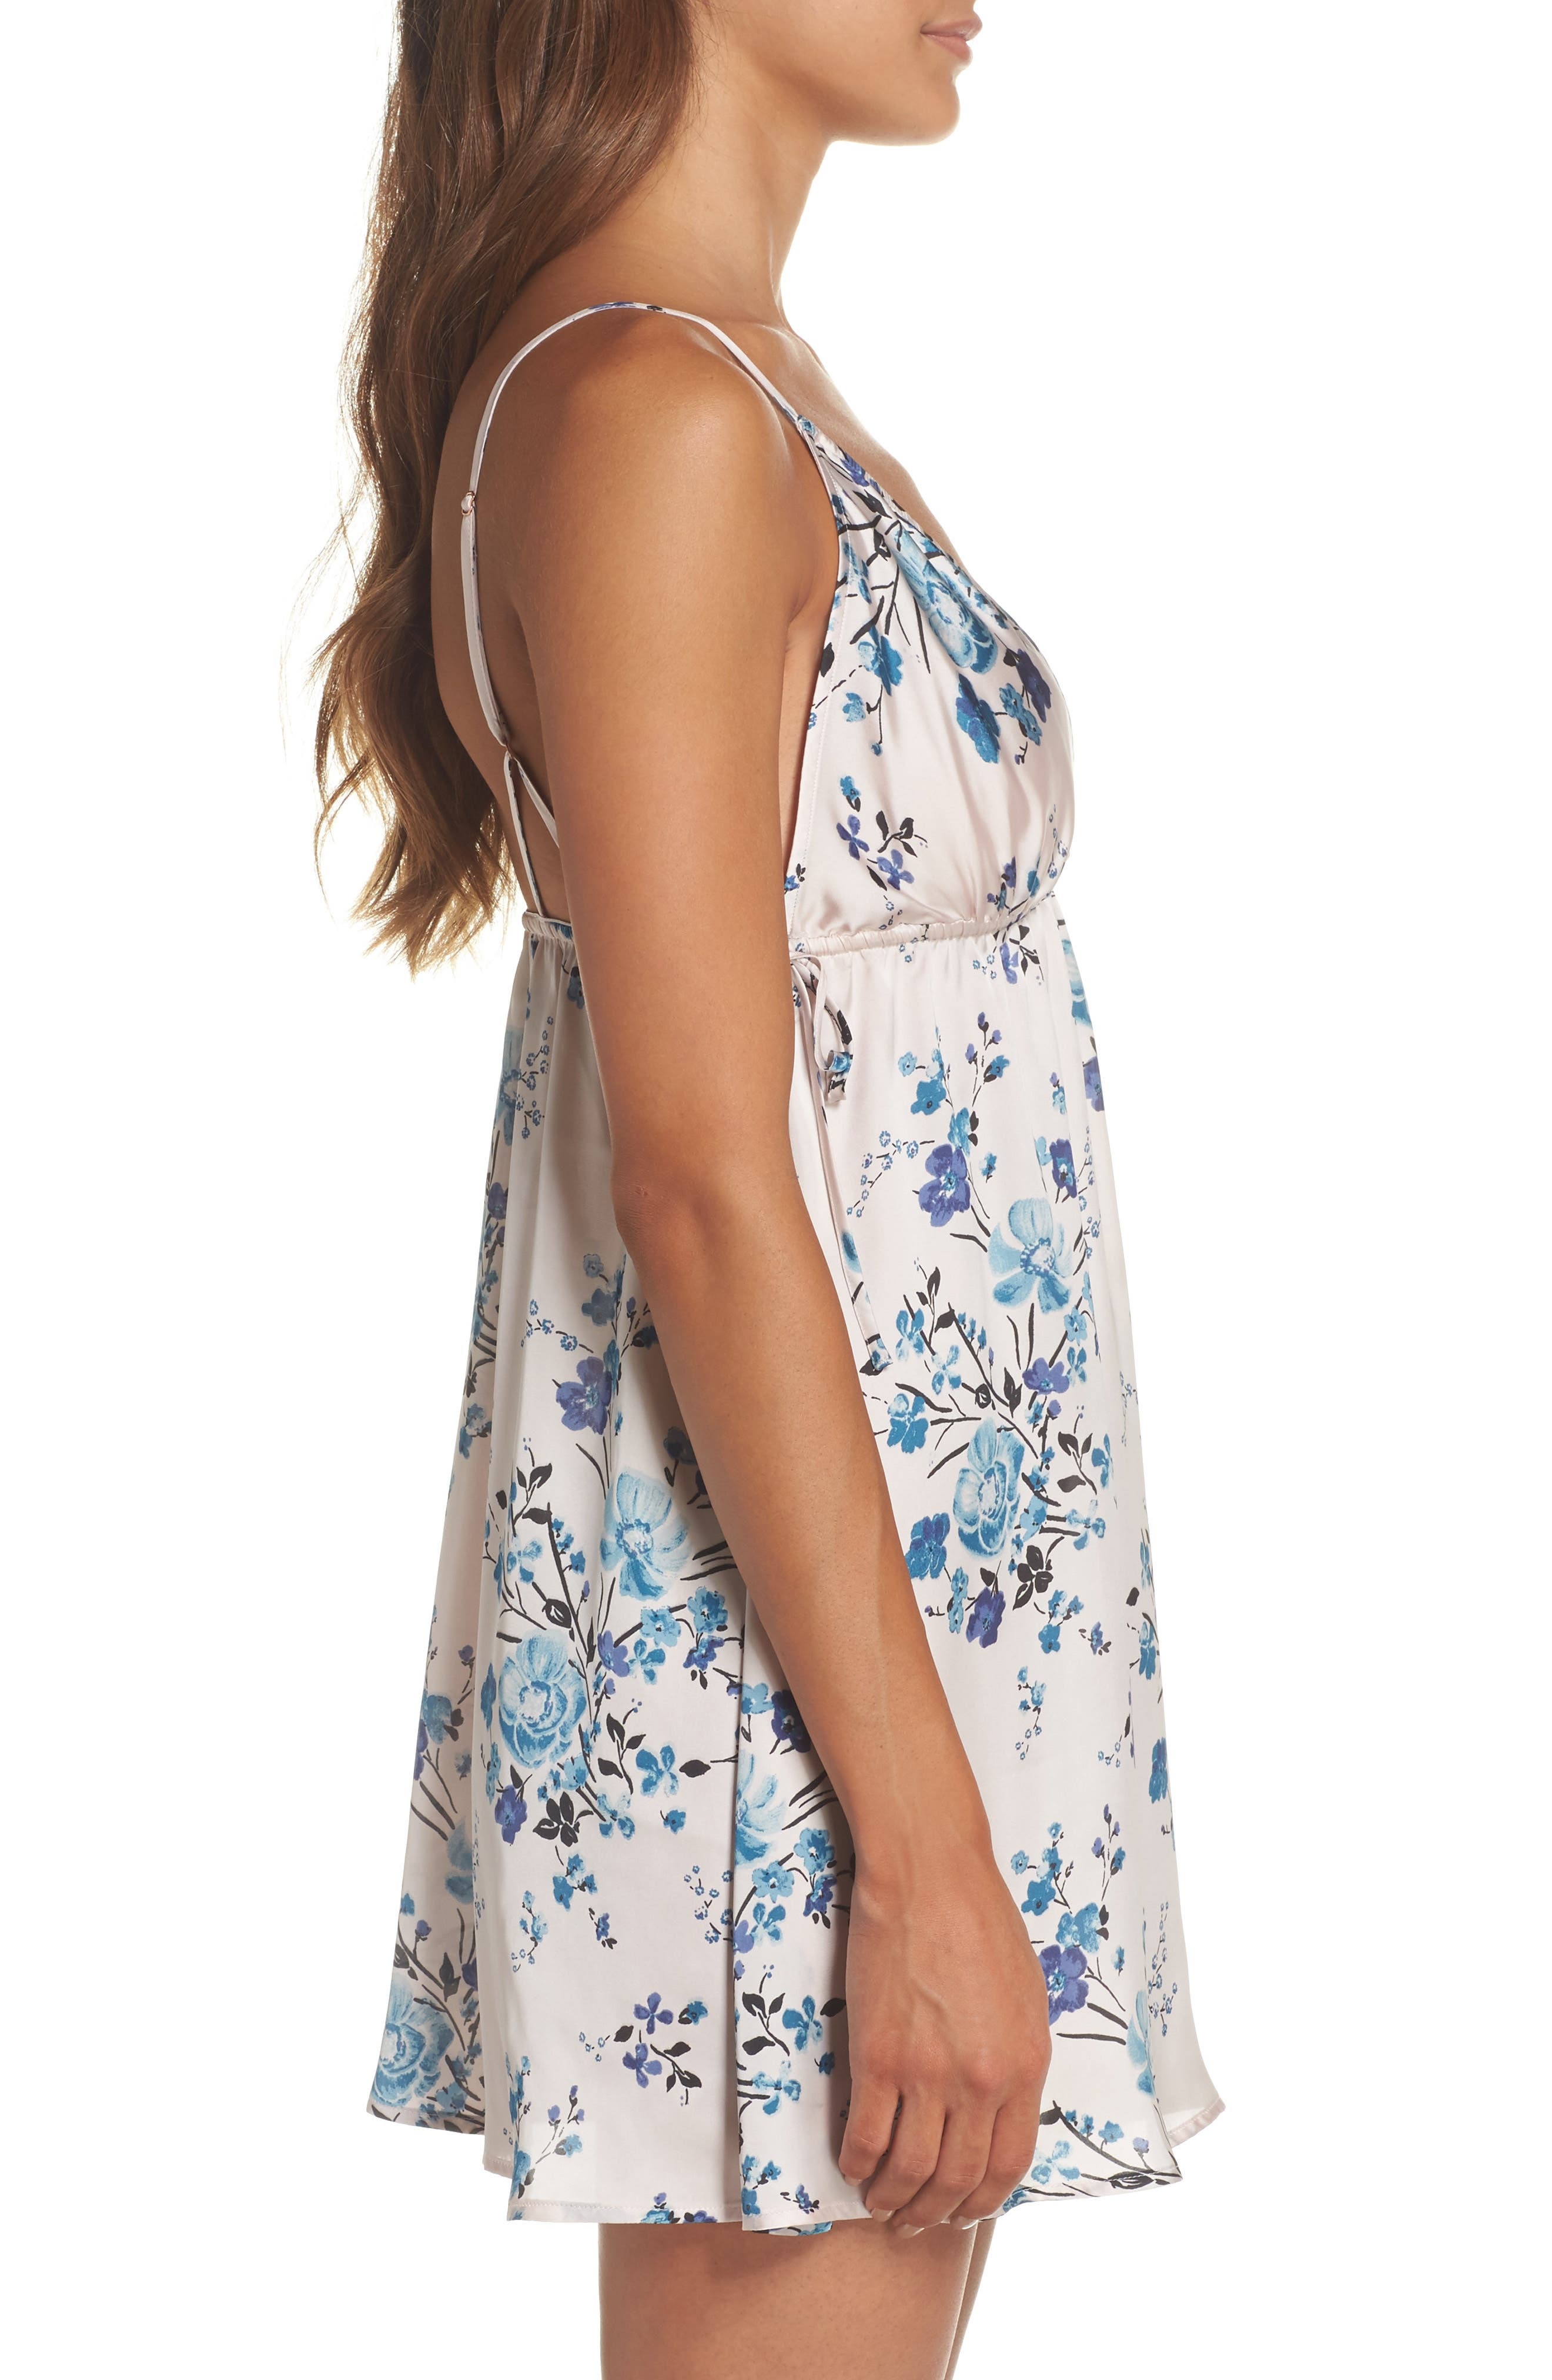 In My Dreams Chemise,                             Alternate thumbnail 3, color,                             Pink Morn Pretty Floral